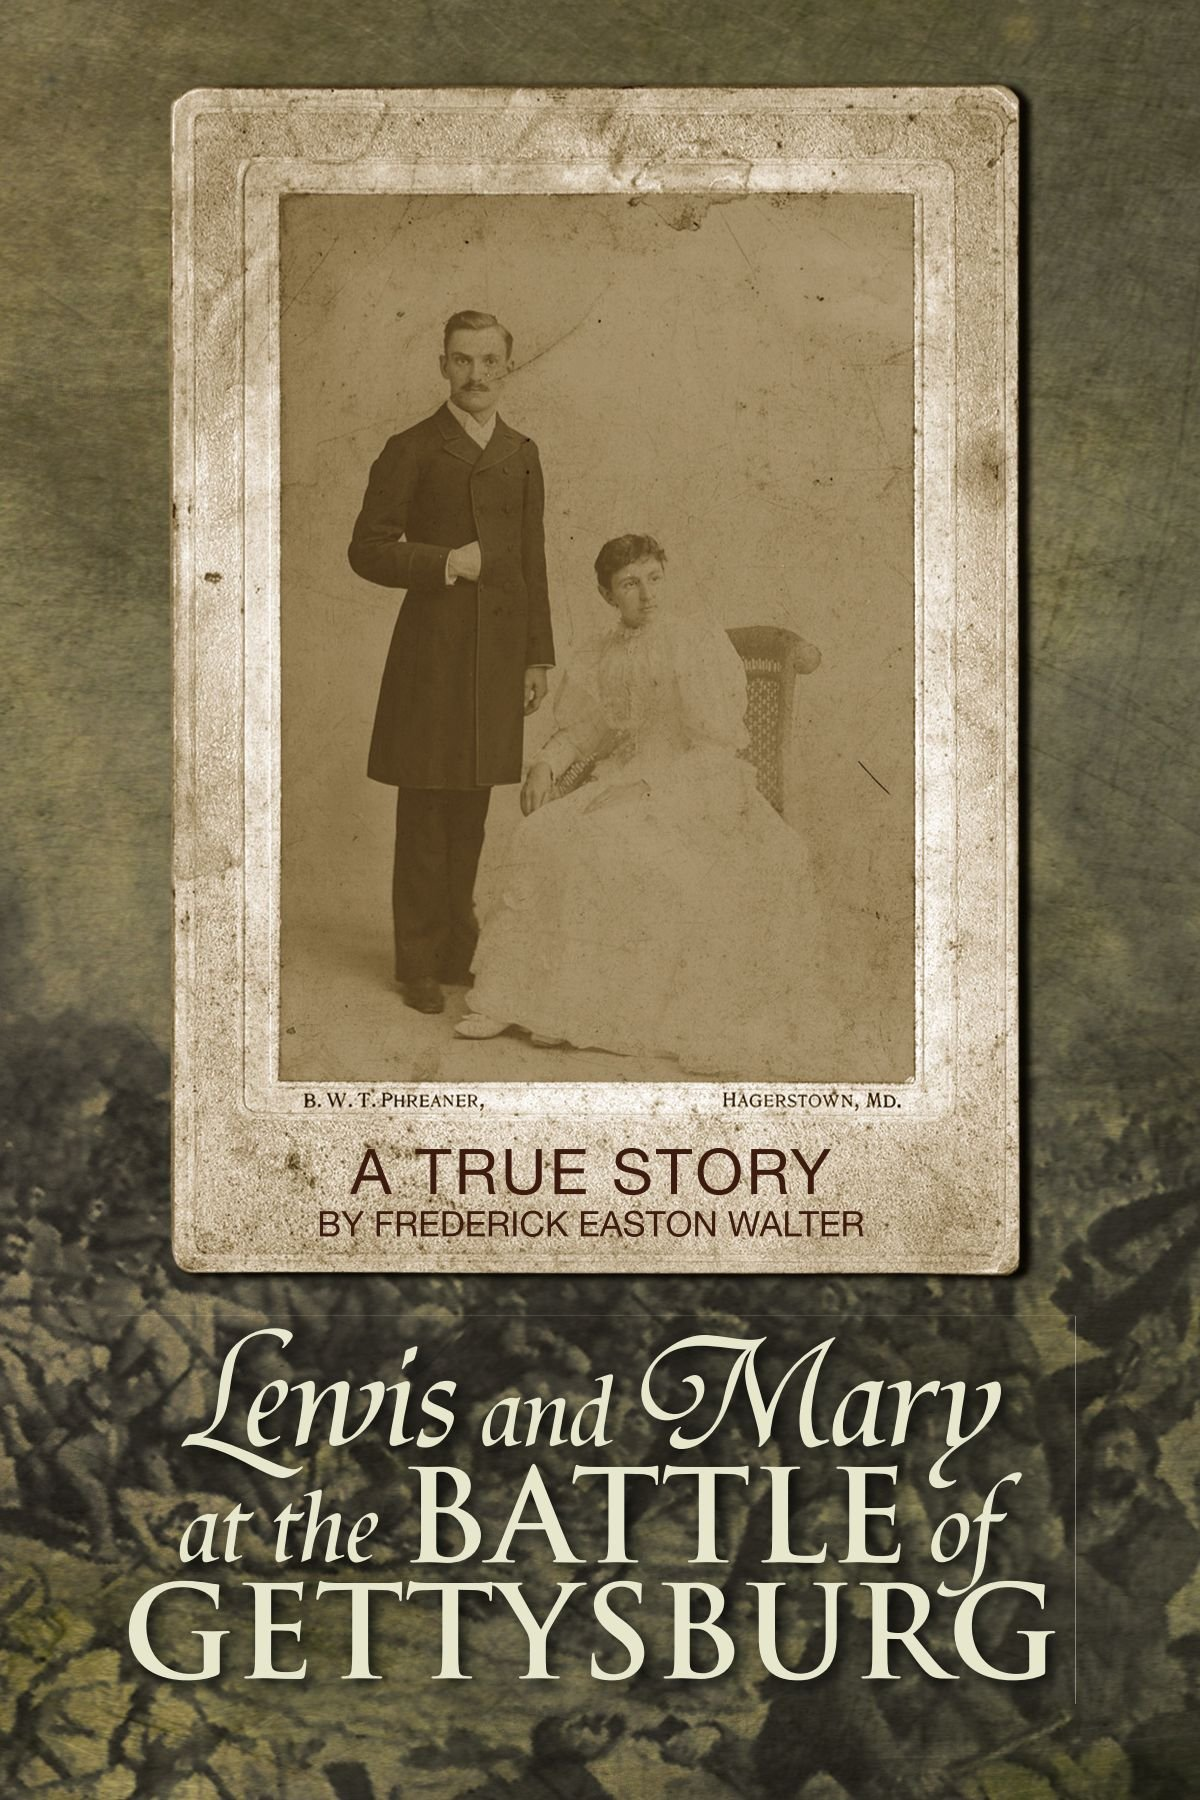 Lewis and Mary at the Battle of Gettysburg: A True Story